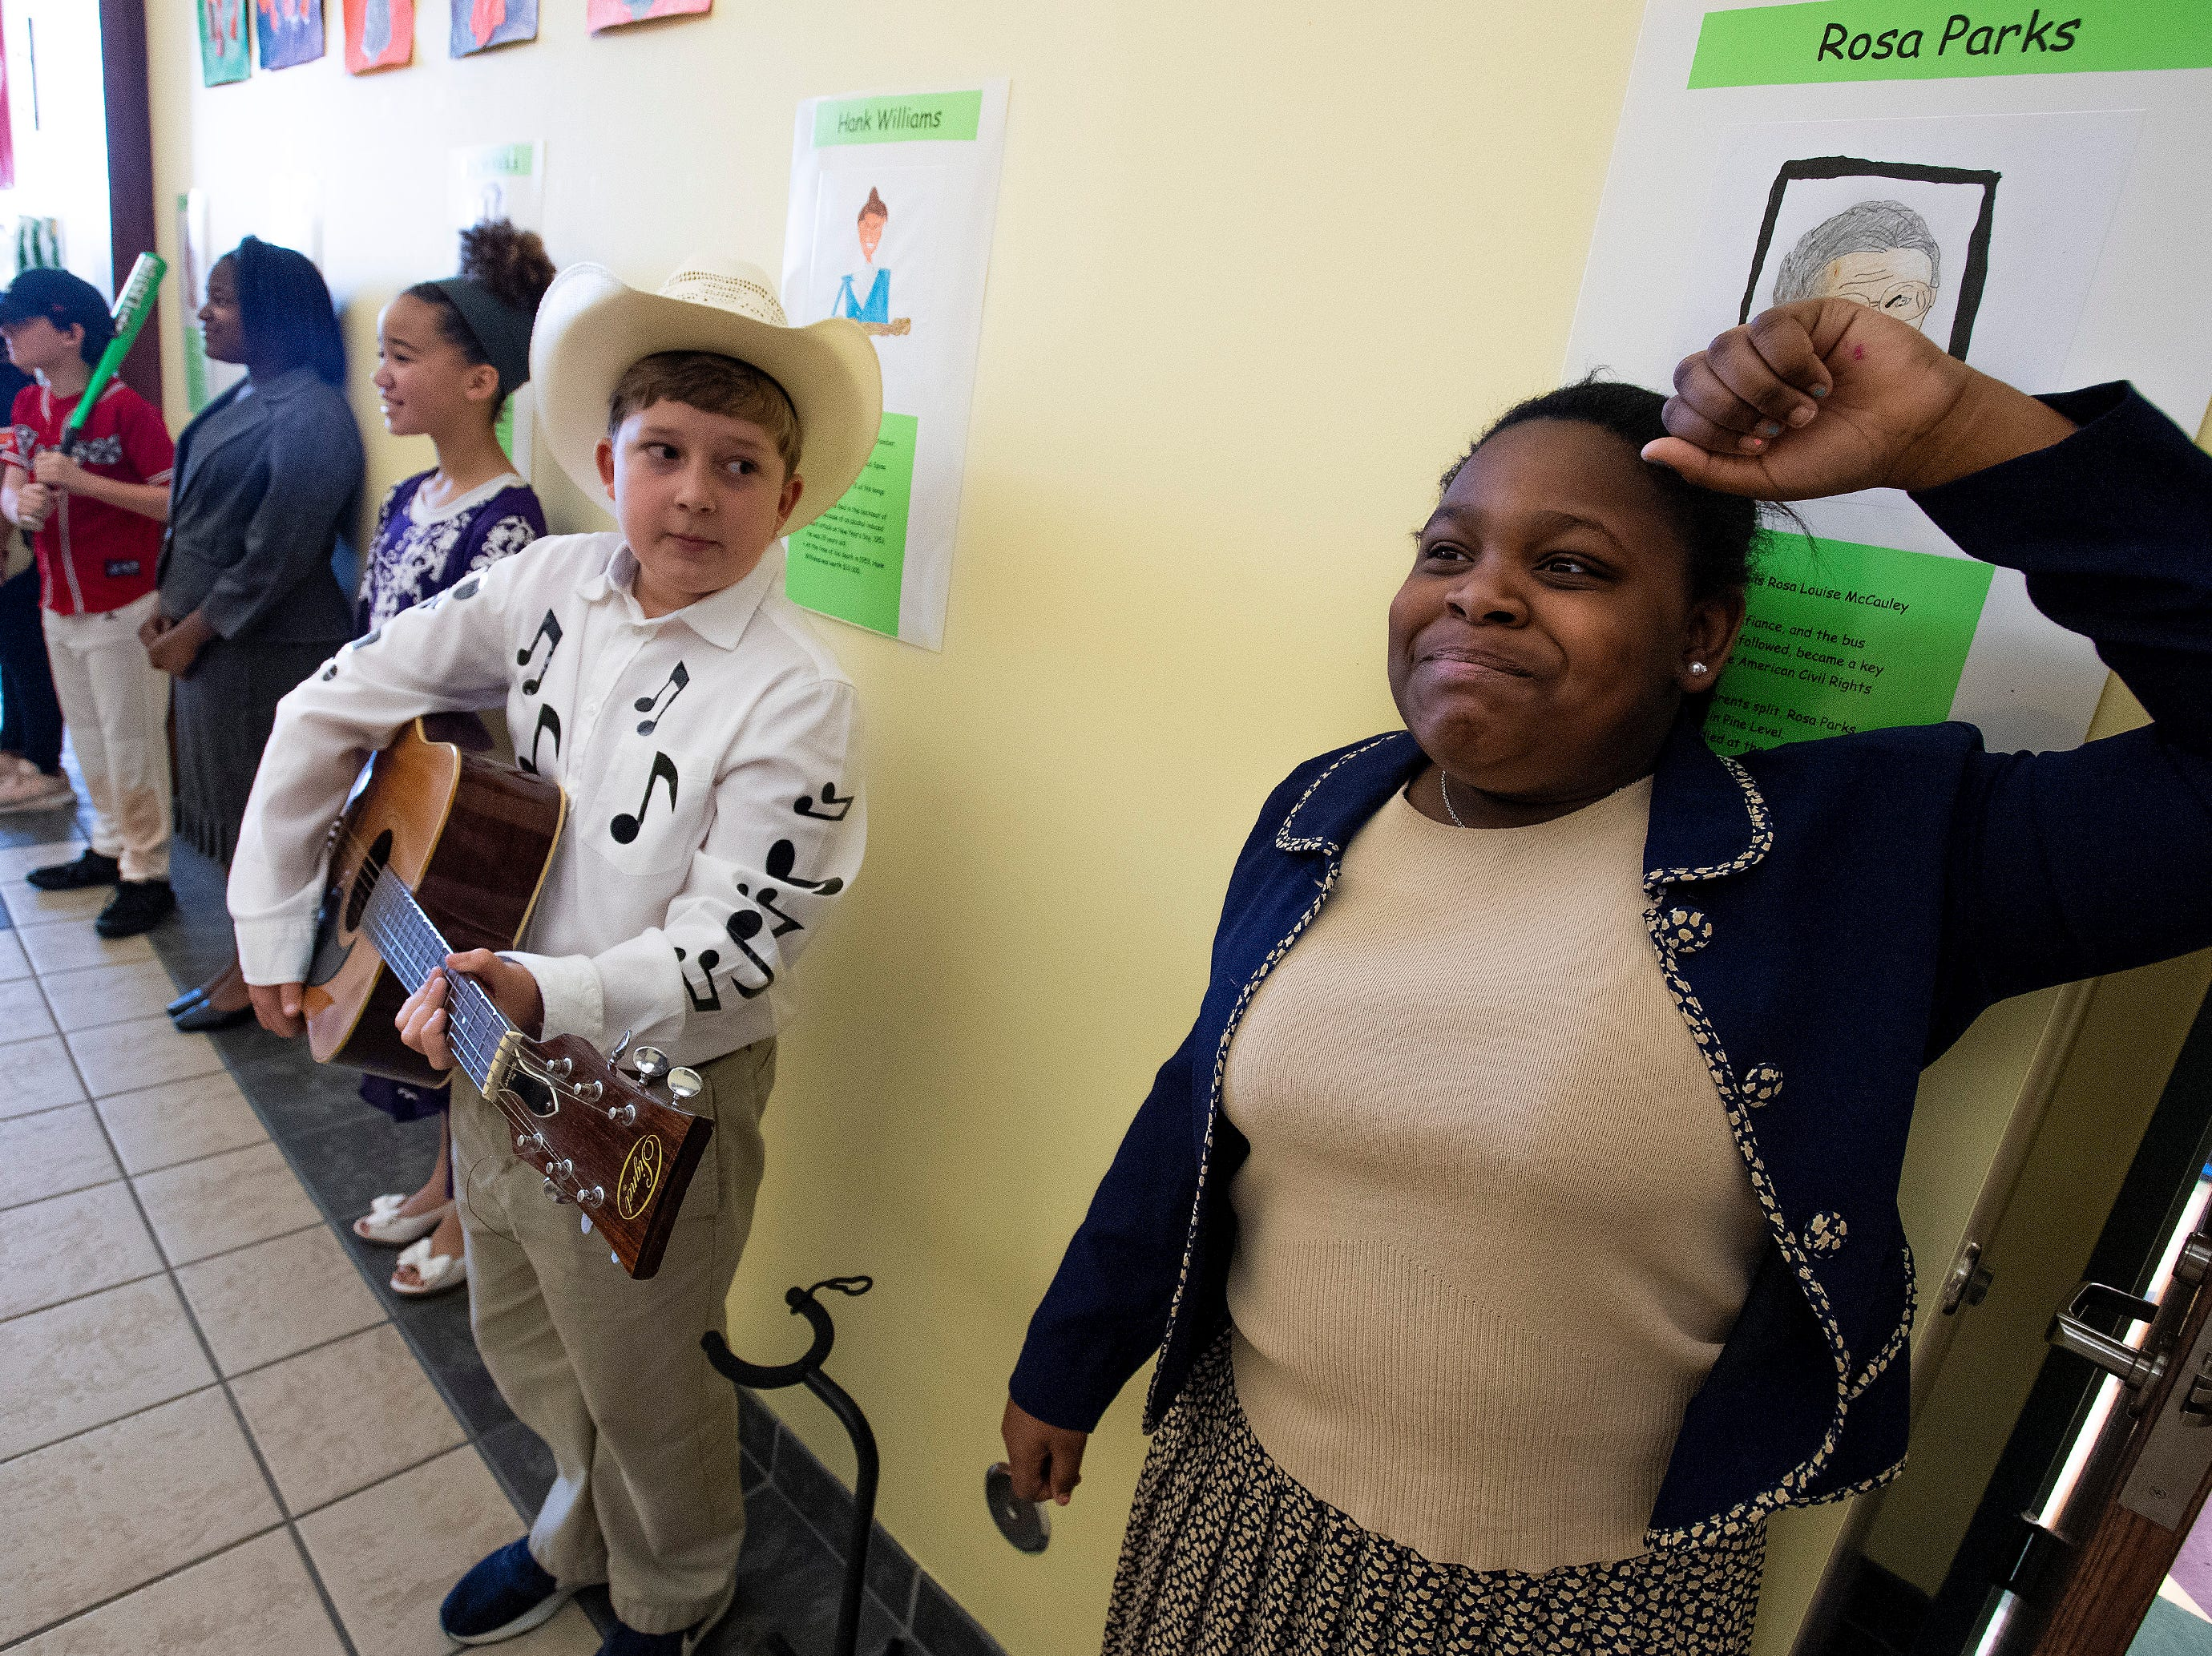 Hayley Whetstone plays Rosa Parks and Andrew Peavy plays Hank Williams as students portray Alabamians in their Alabama Bicentennial Wax Museum, telling the stories of their characters to visitors, at Holy Cross Episcopal School in Montgomery, Ala., on Friday February 15, 2019.